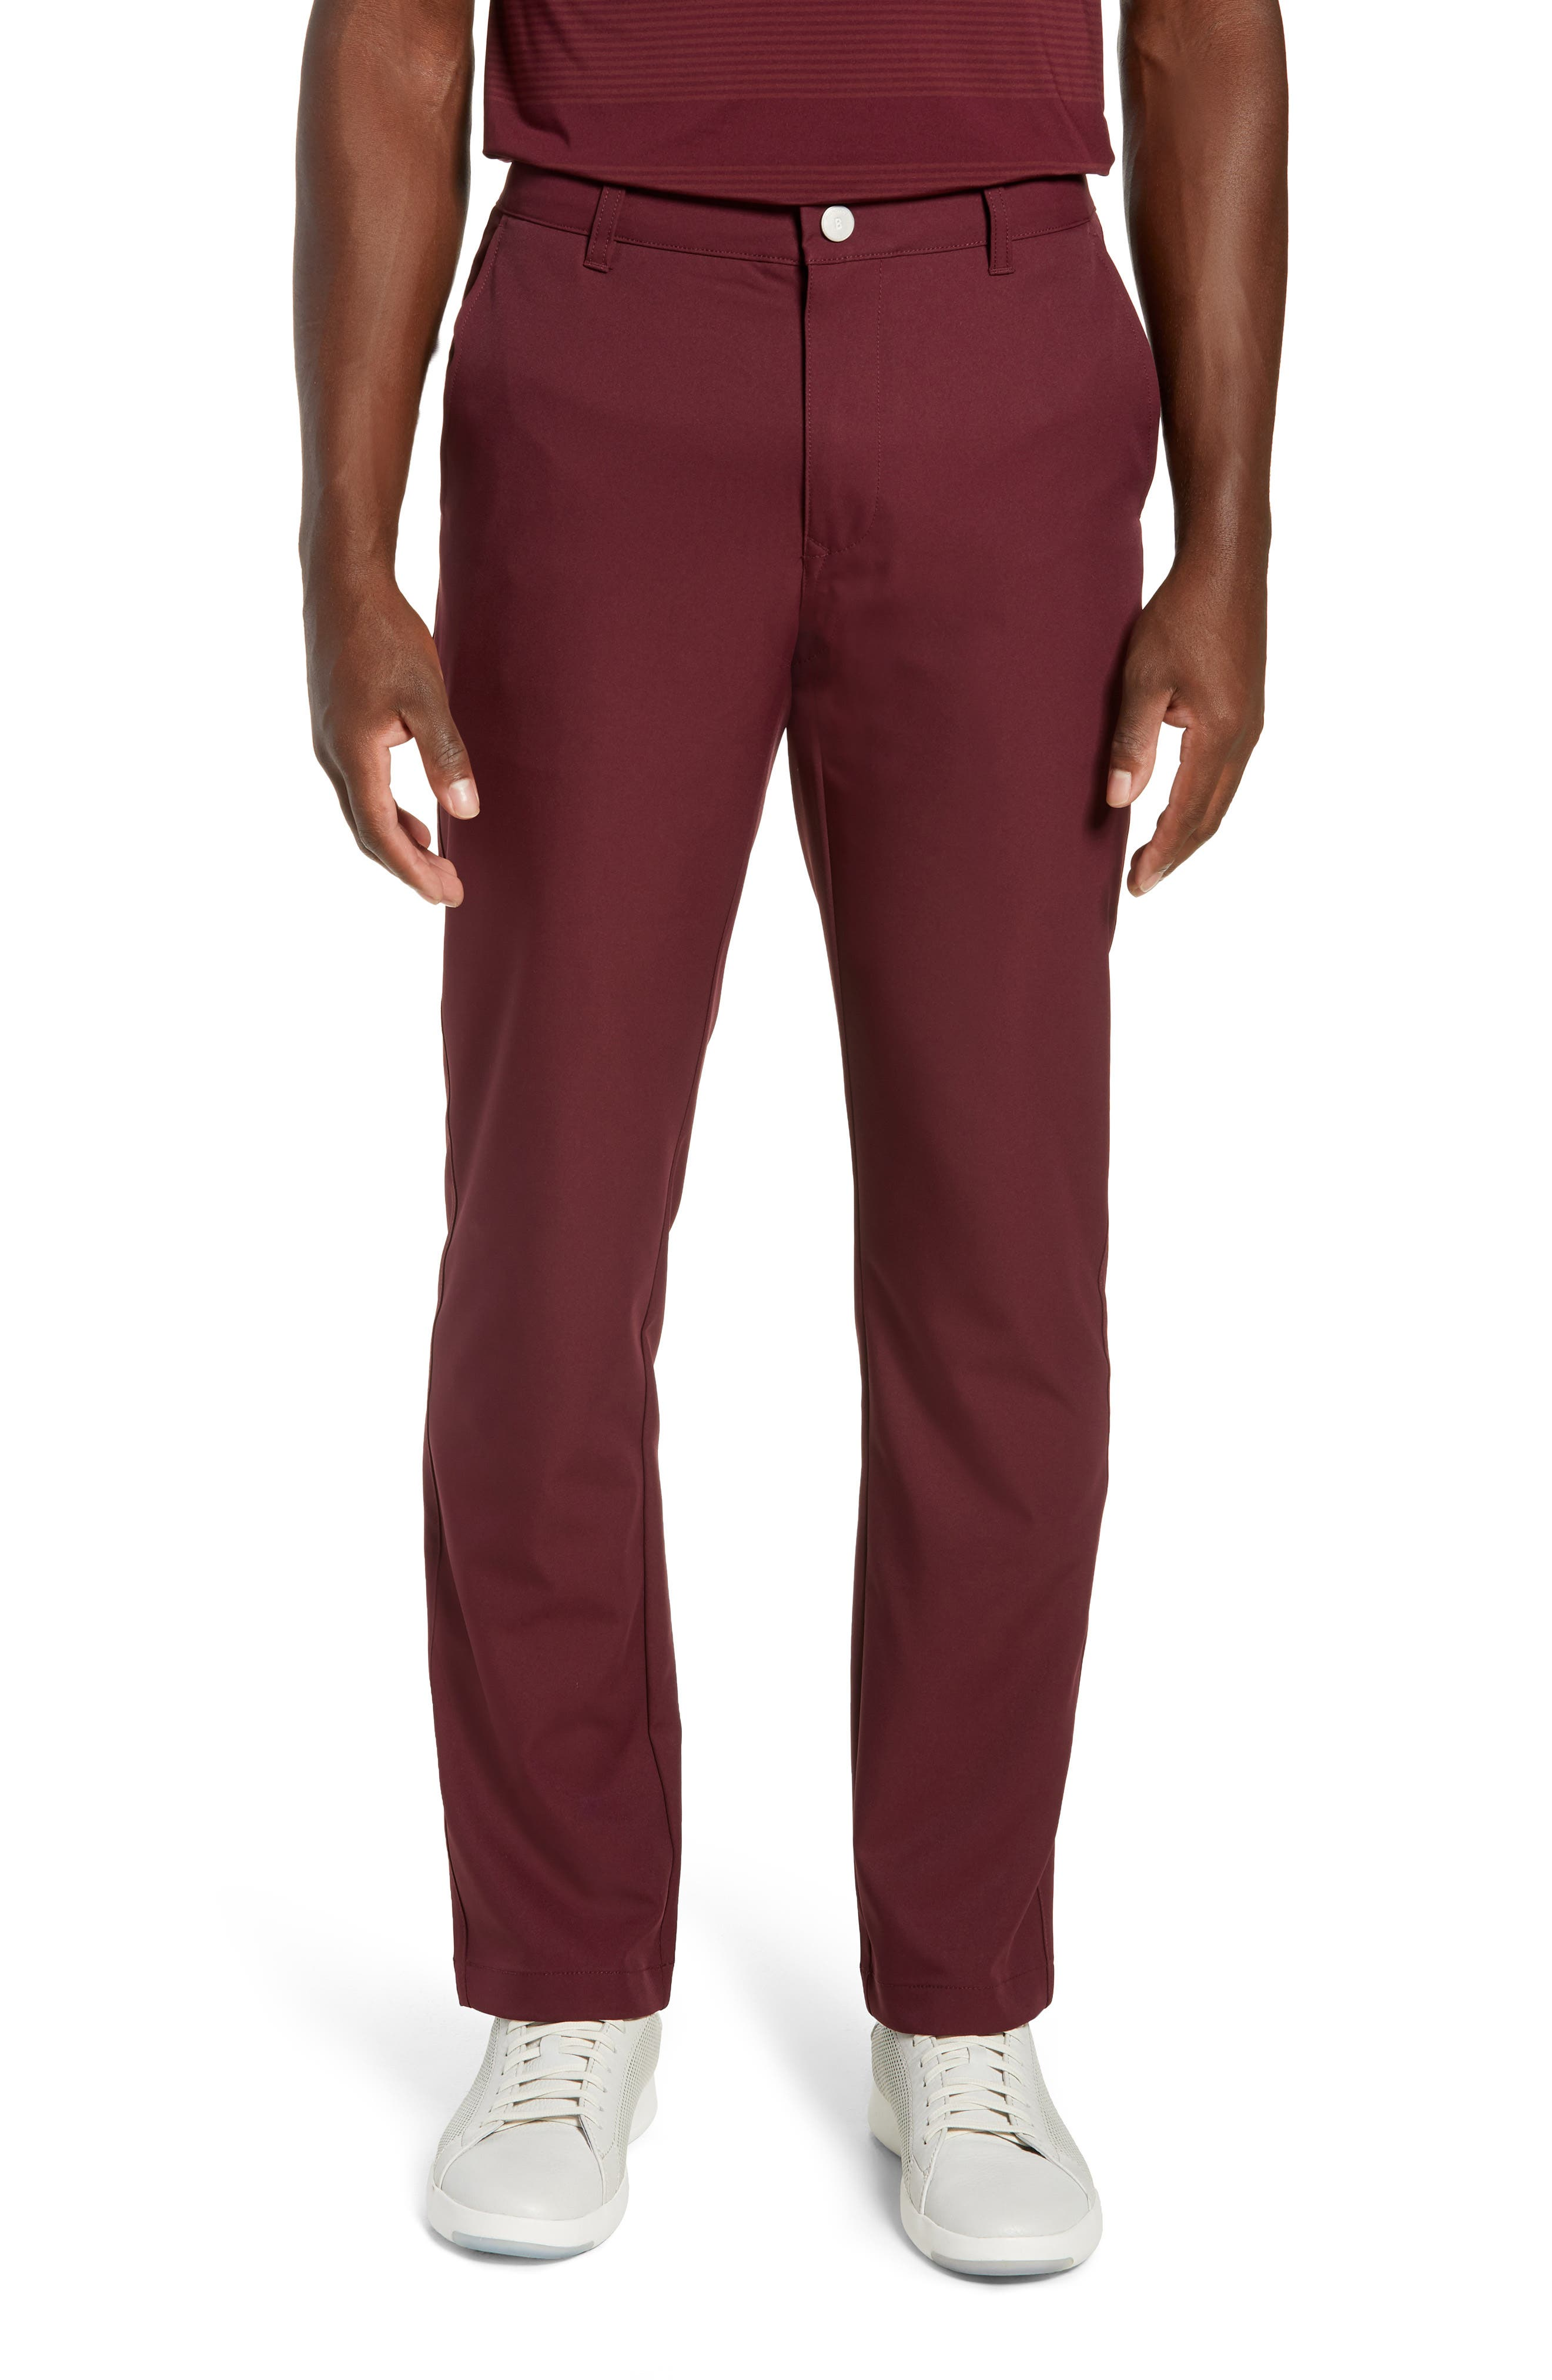 Highland Slim Fit Golf Pants,                         Main,                         color, 600